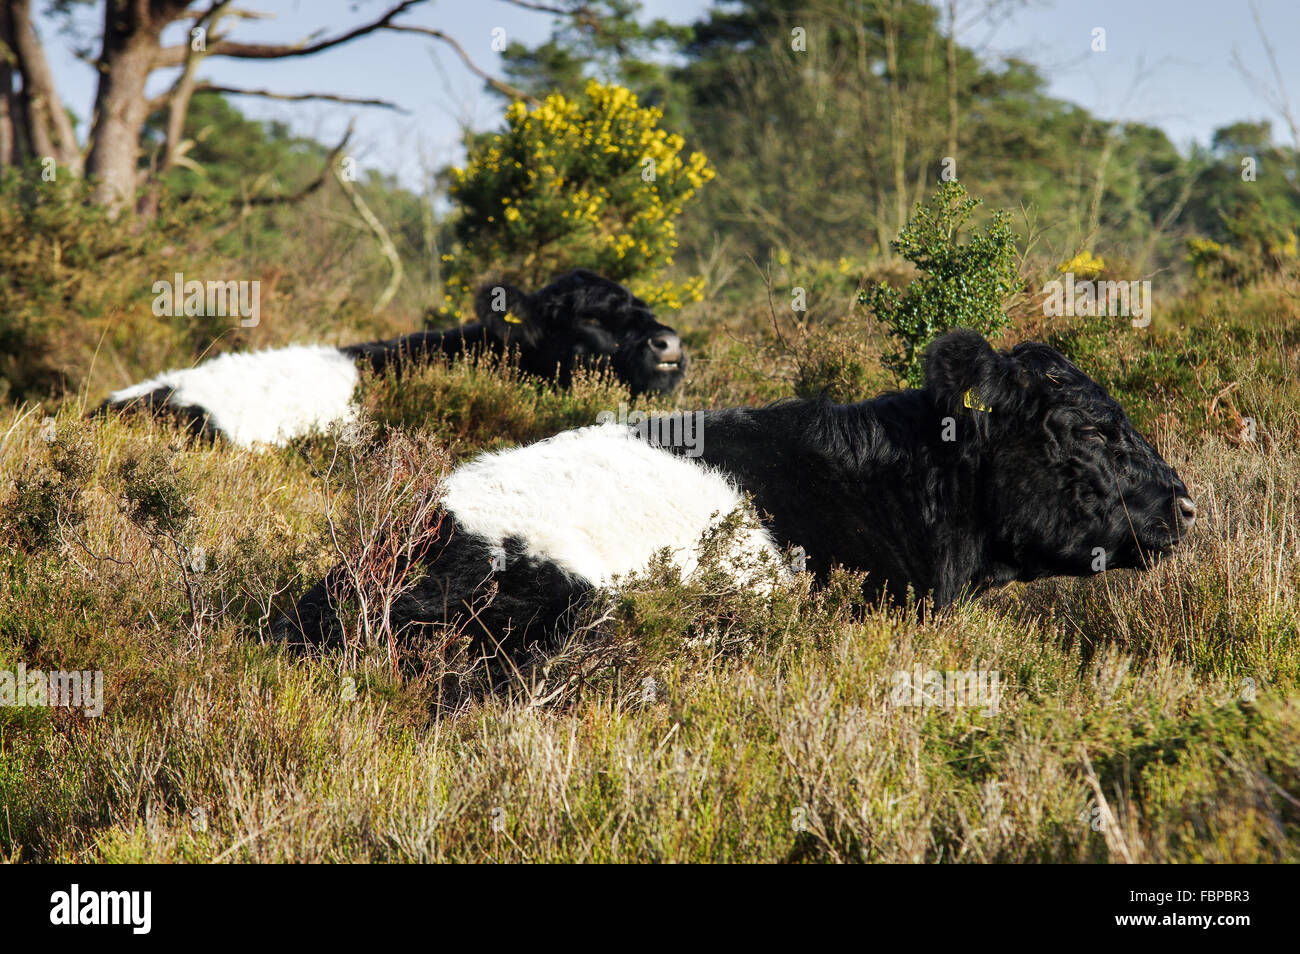 Aberdeen Angus cattle grazing around Blackdown - South Downs National Park, Sussex, England Stock Photo